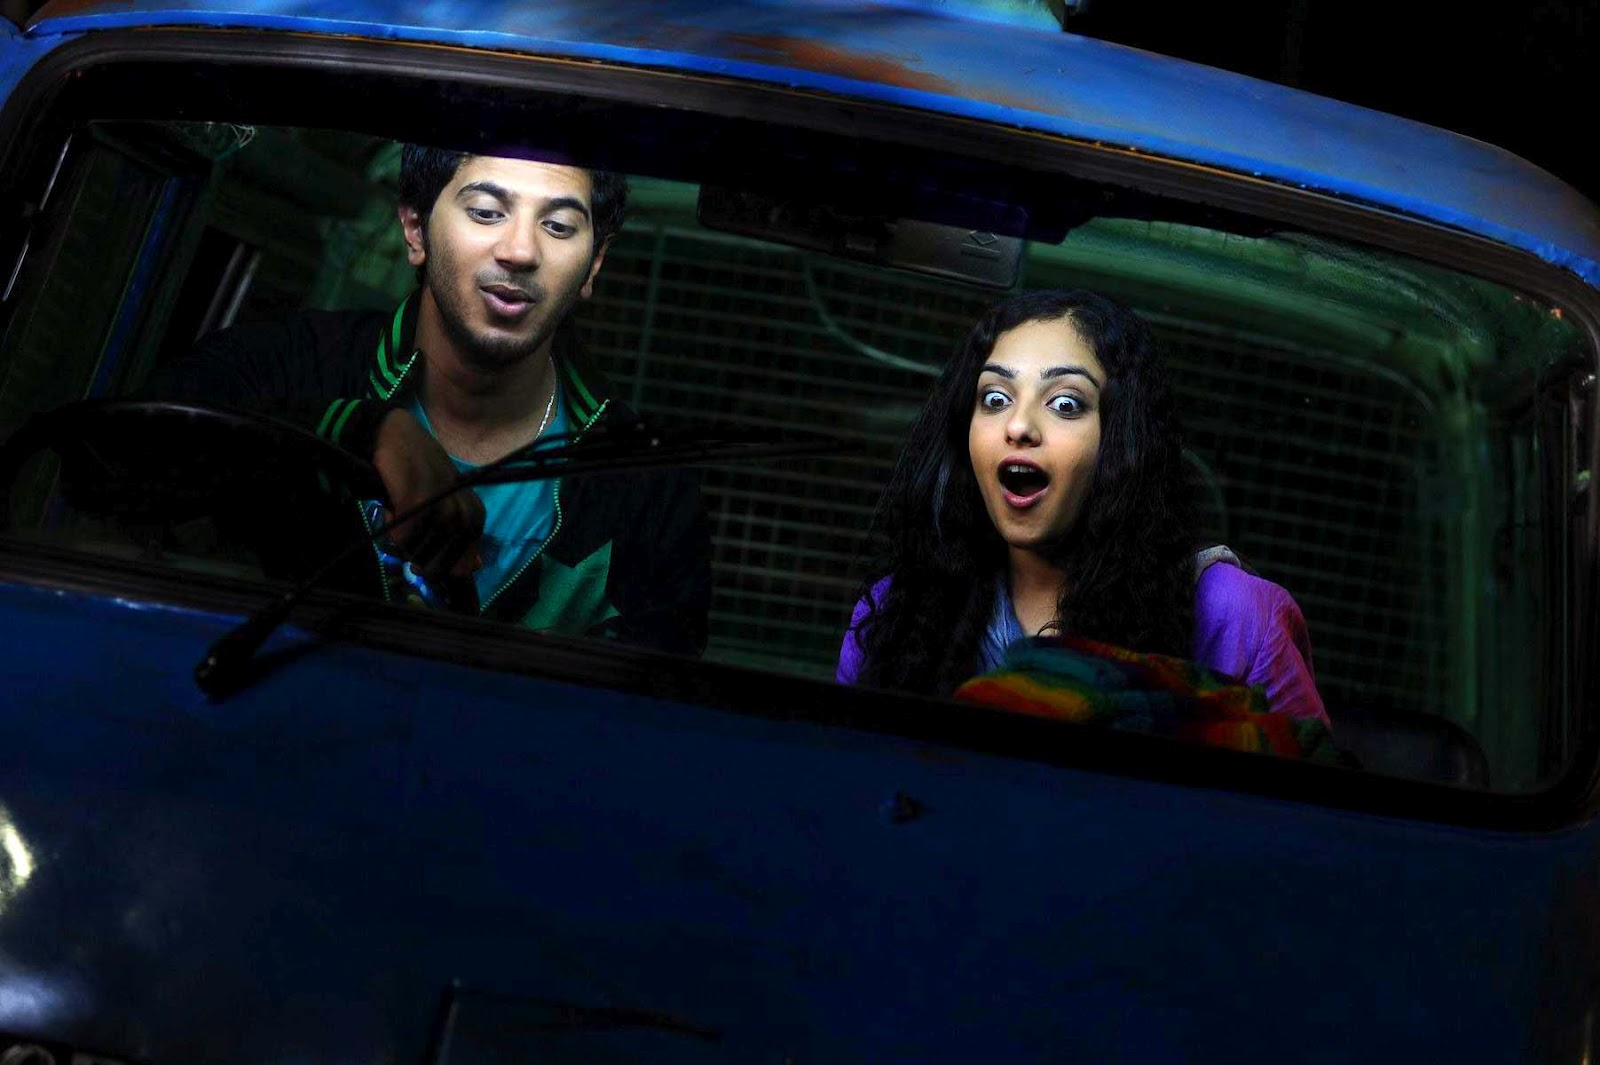 Usthad Hotel Malayalam Movie Songs,Videos,Wallpapers ~ CrAzY B CrAzY